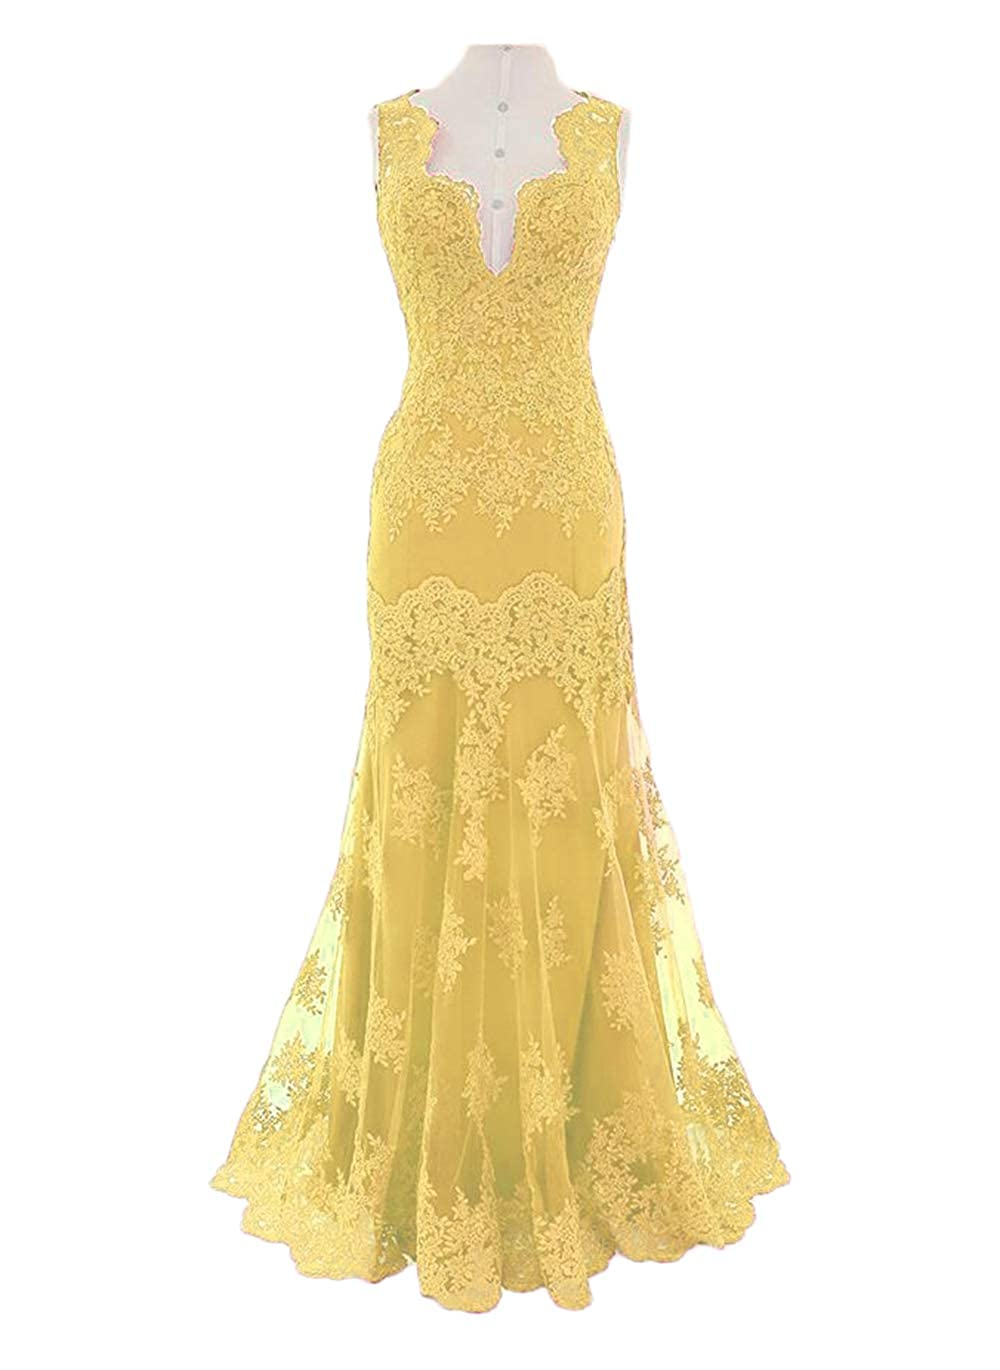 gold alilith.Z Sexy V Neck Prom Dresses Mermaid 2019 Appliques Lace Long Formal Evening Dresses Party Gowns for Women